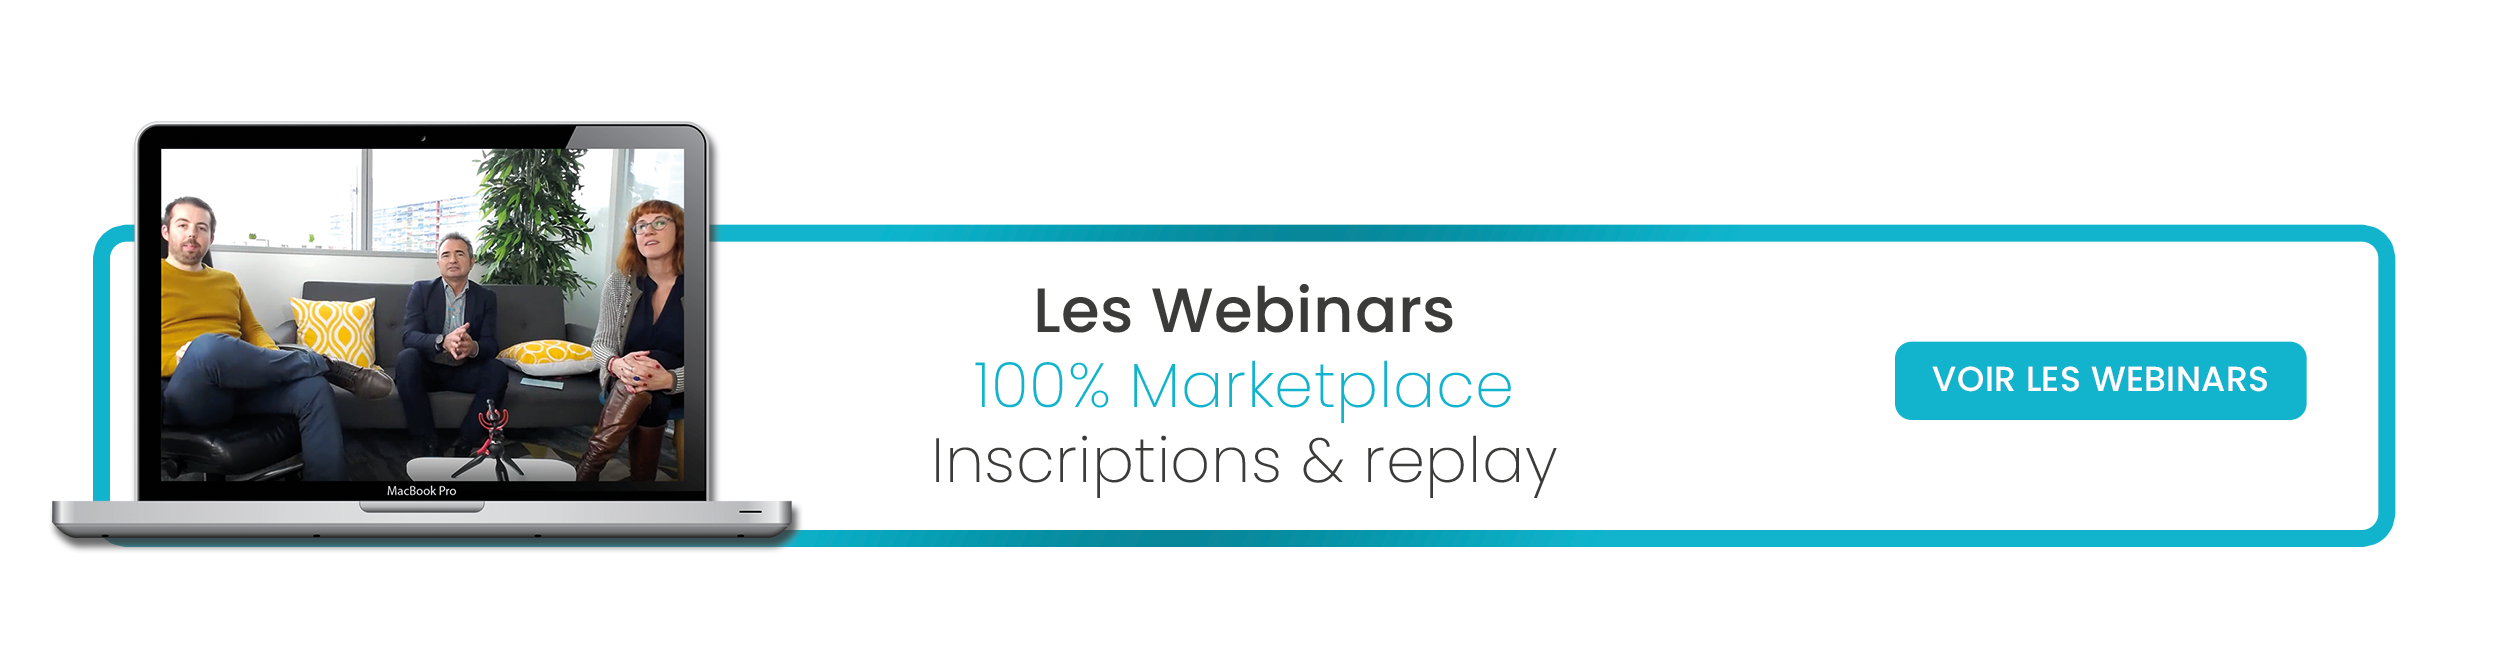 marketplace webinars subscription replay